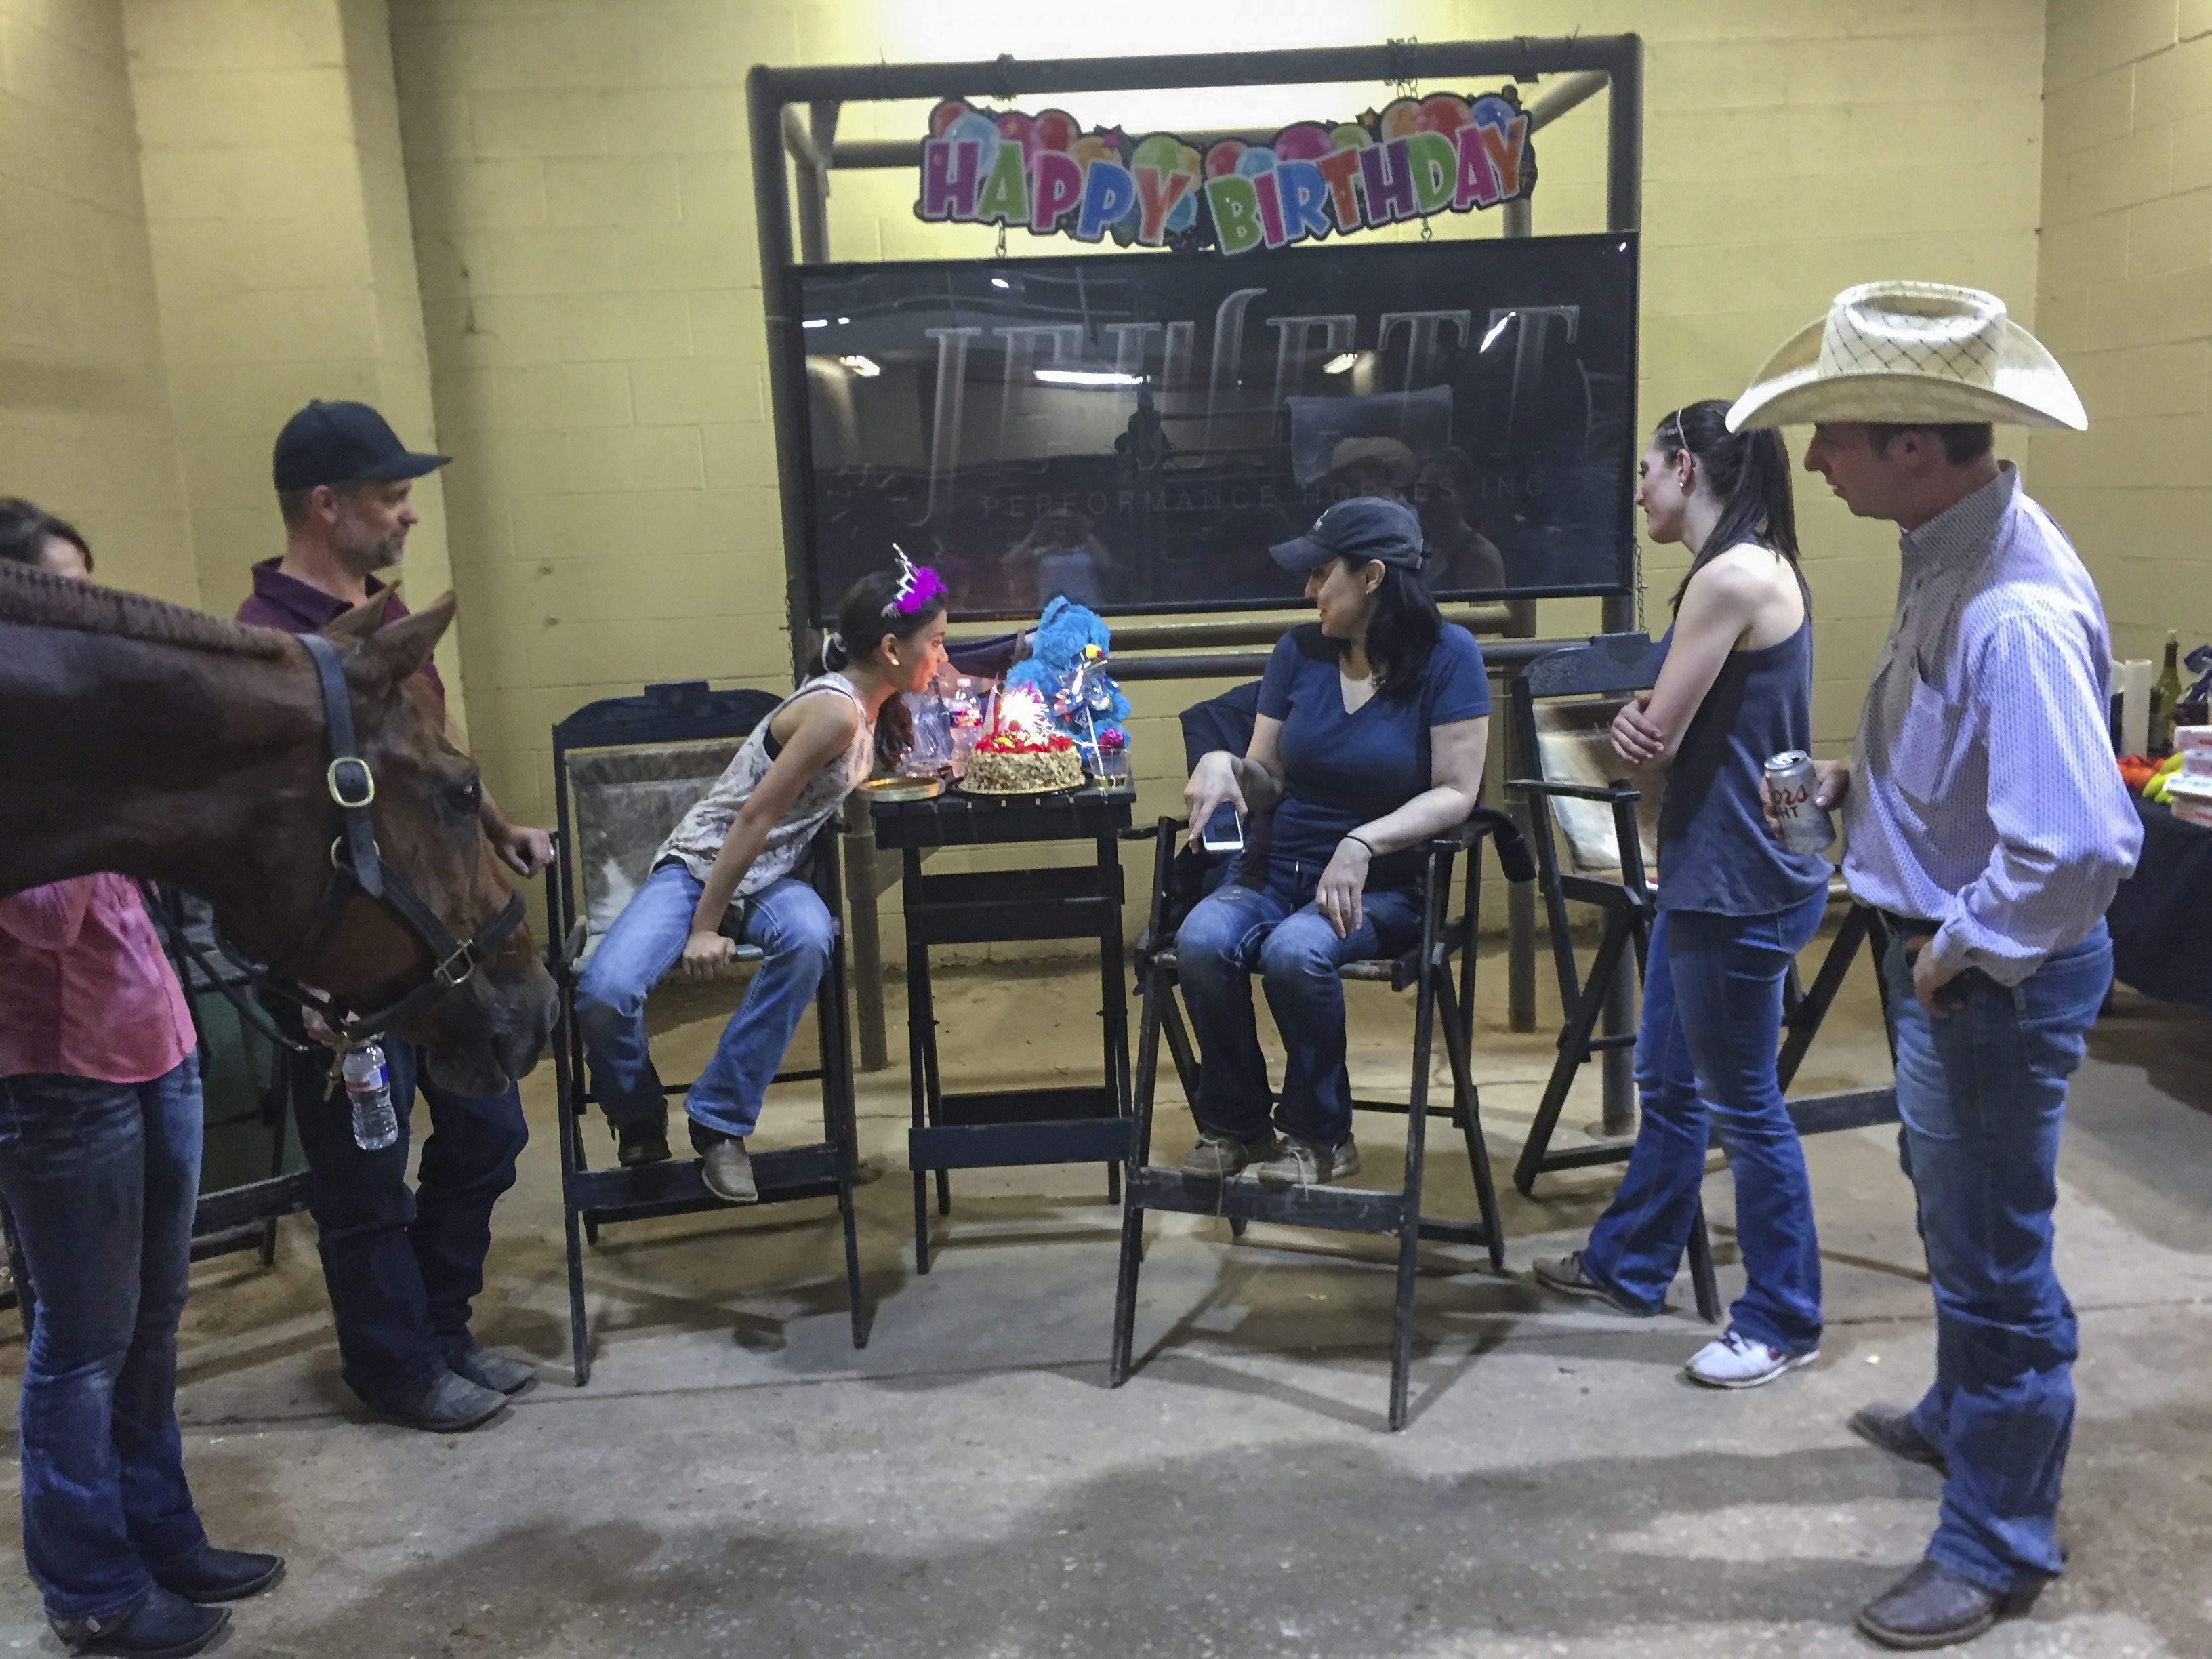 Birthday party at the show